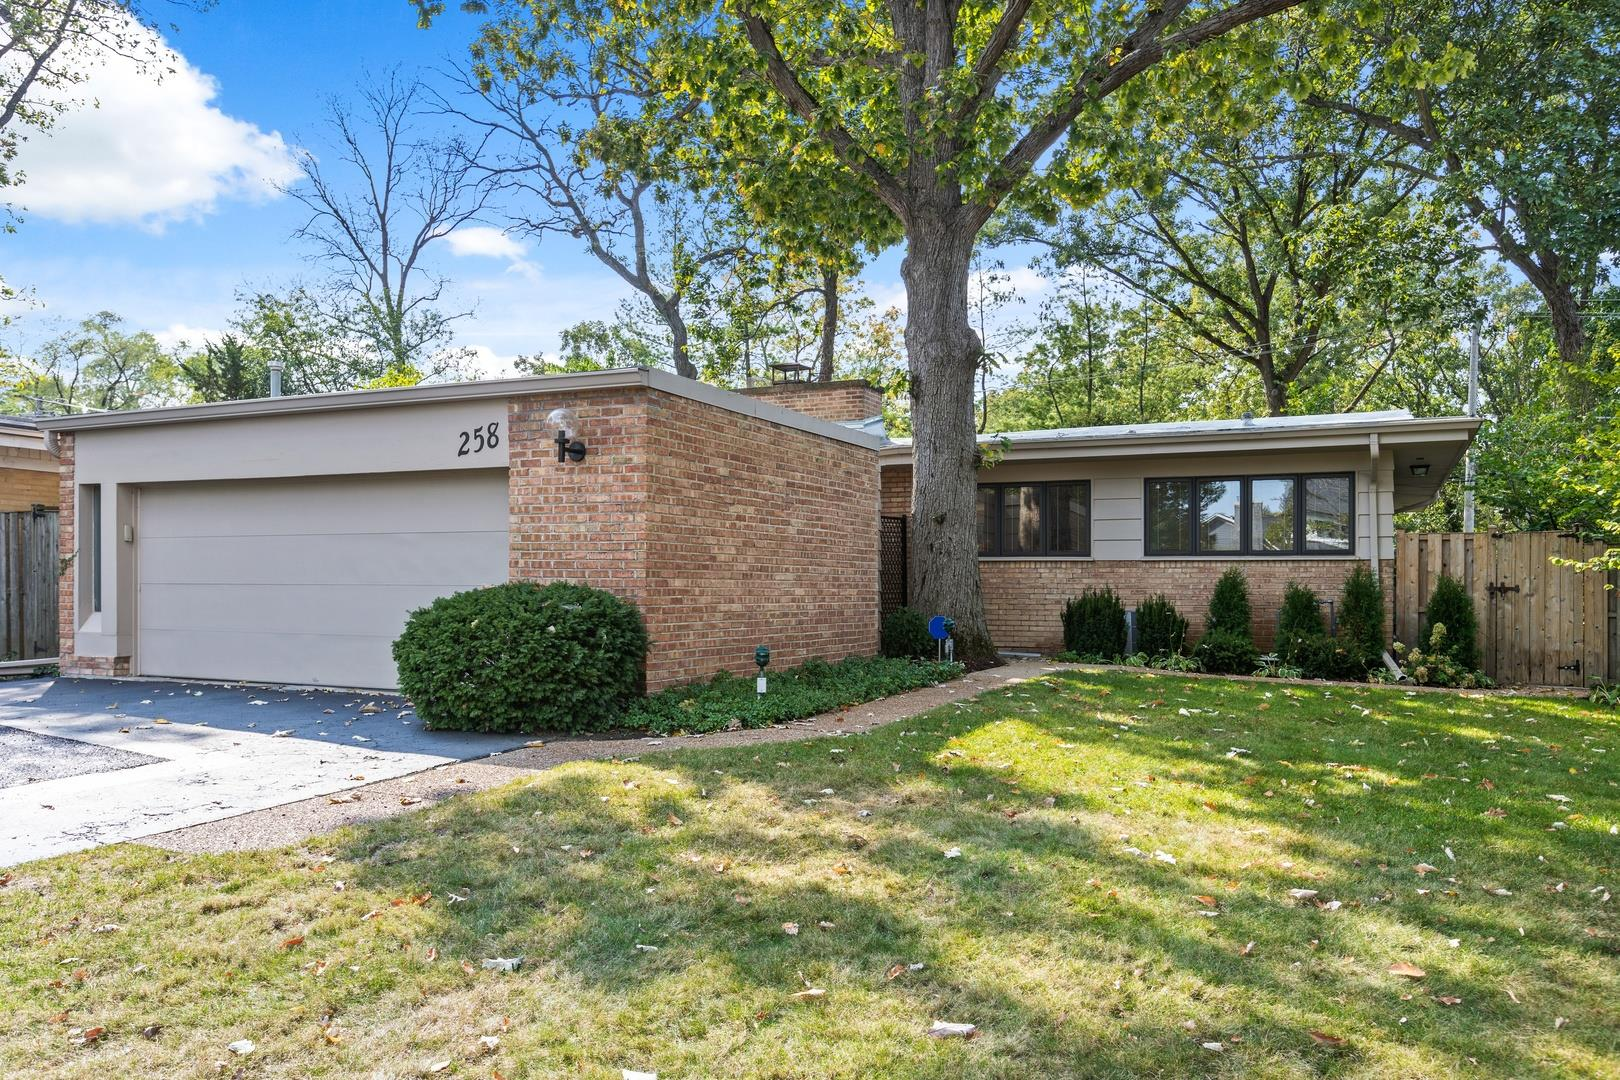 258 Wagner Road, Northfield, IL 60093 - #: 10882442